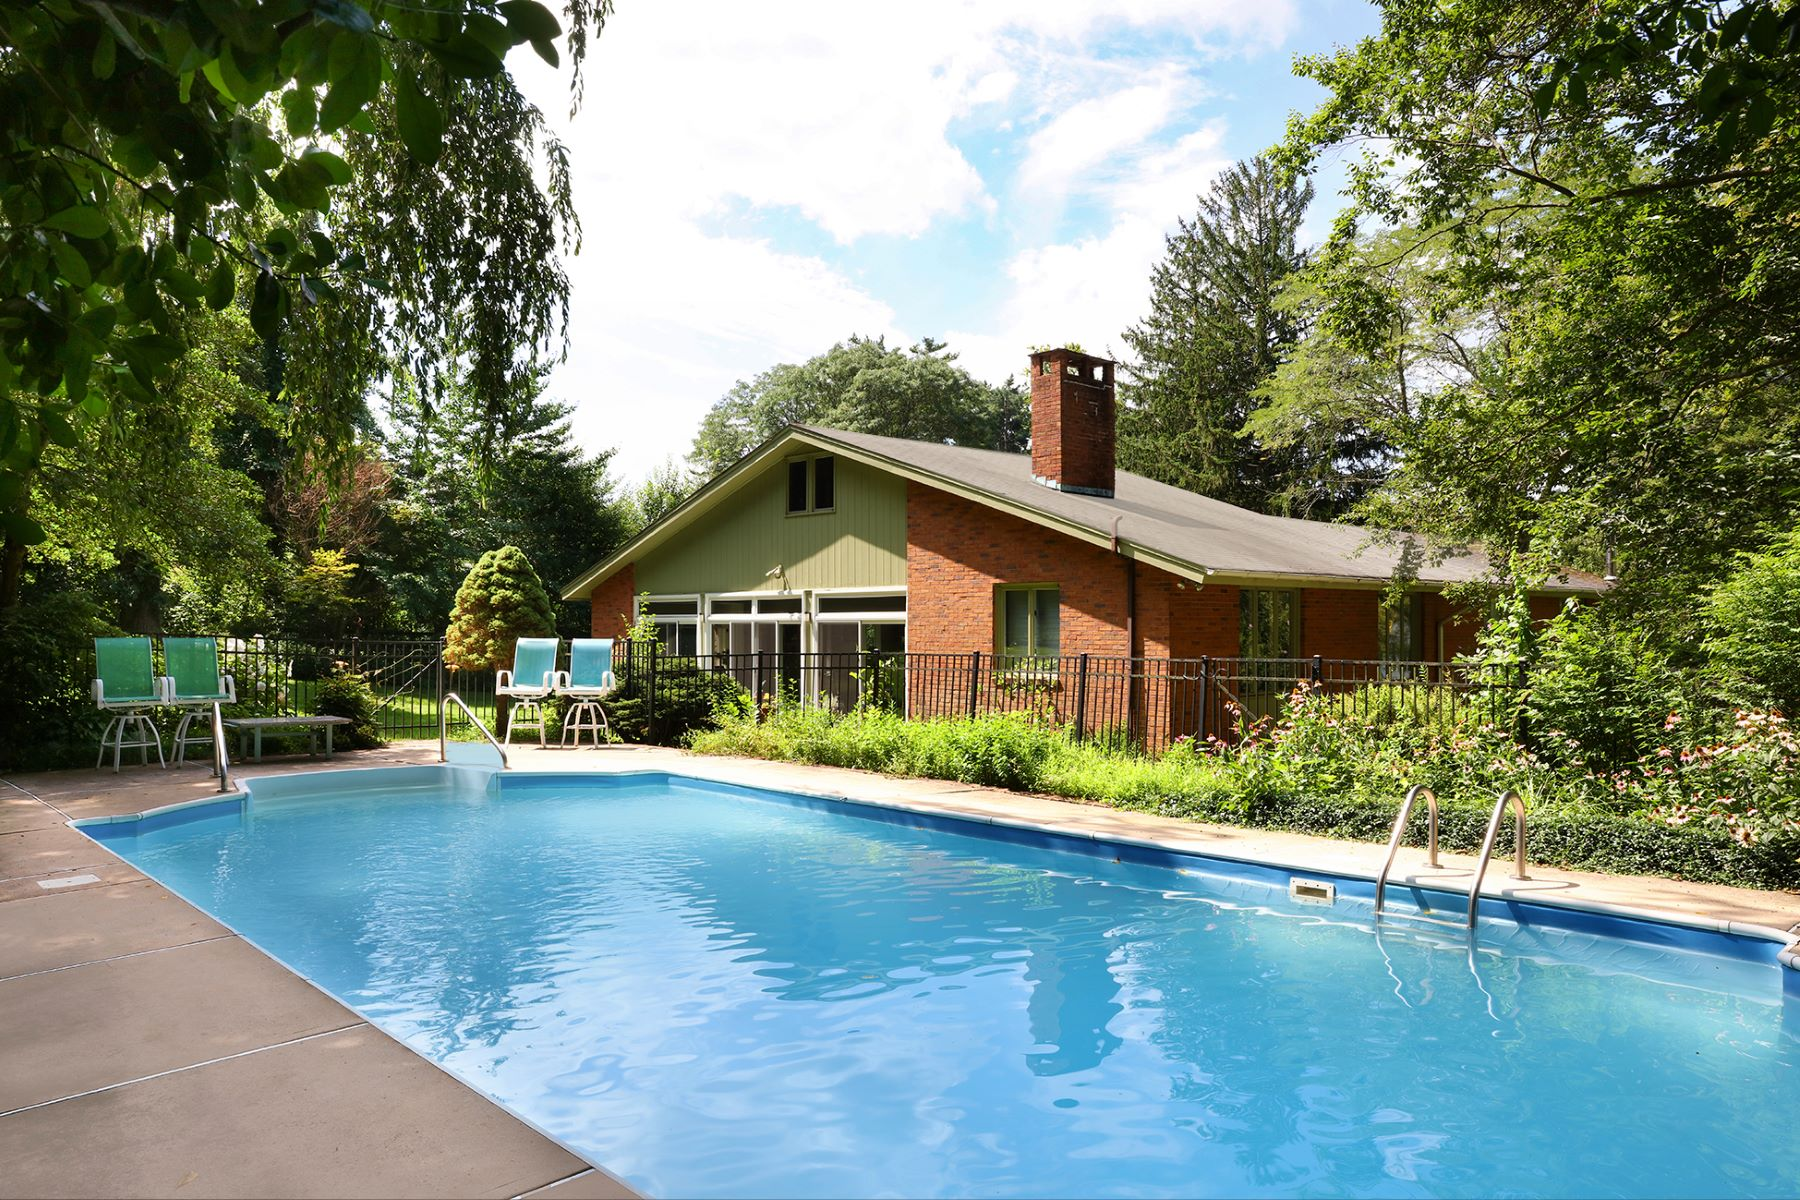 Property for Sale at Mid-Century Modern in Parkside Honors Nature 79 Parkside Drive, Princeton, New Jersey 08540 United States